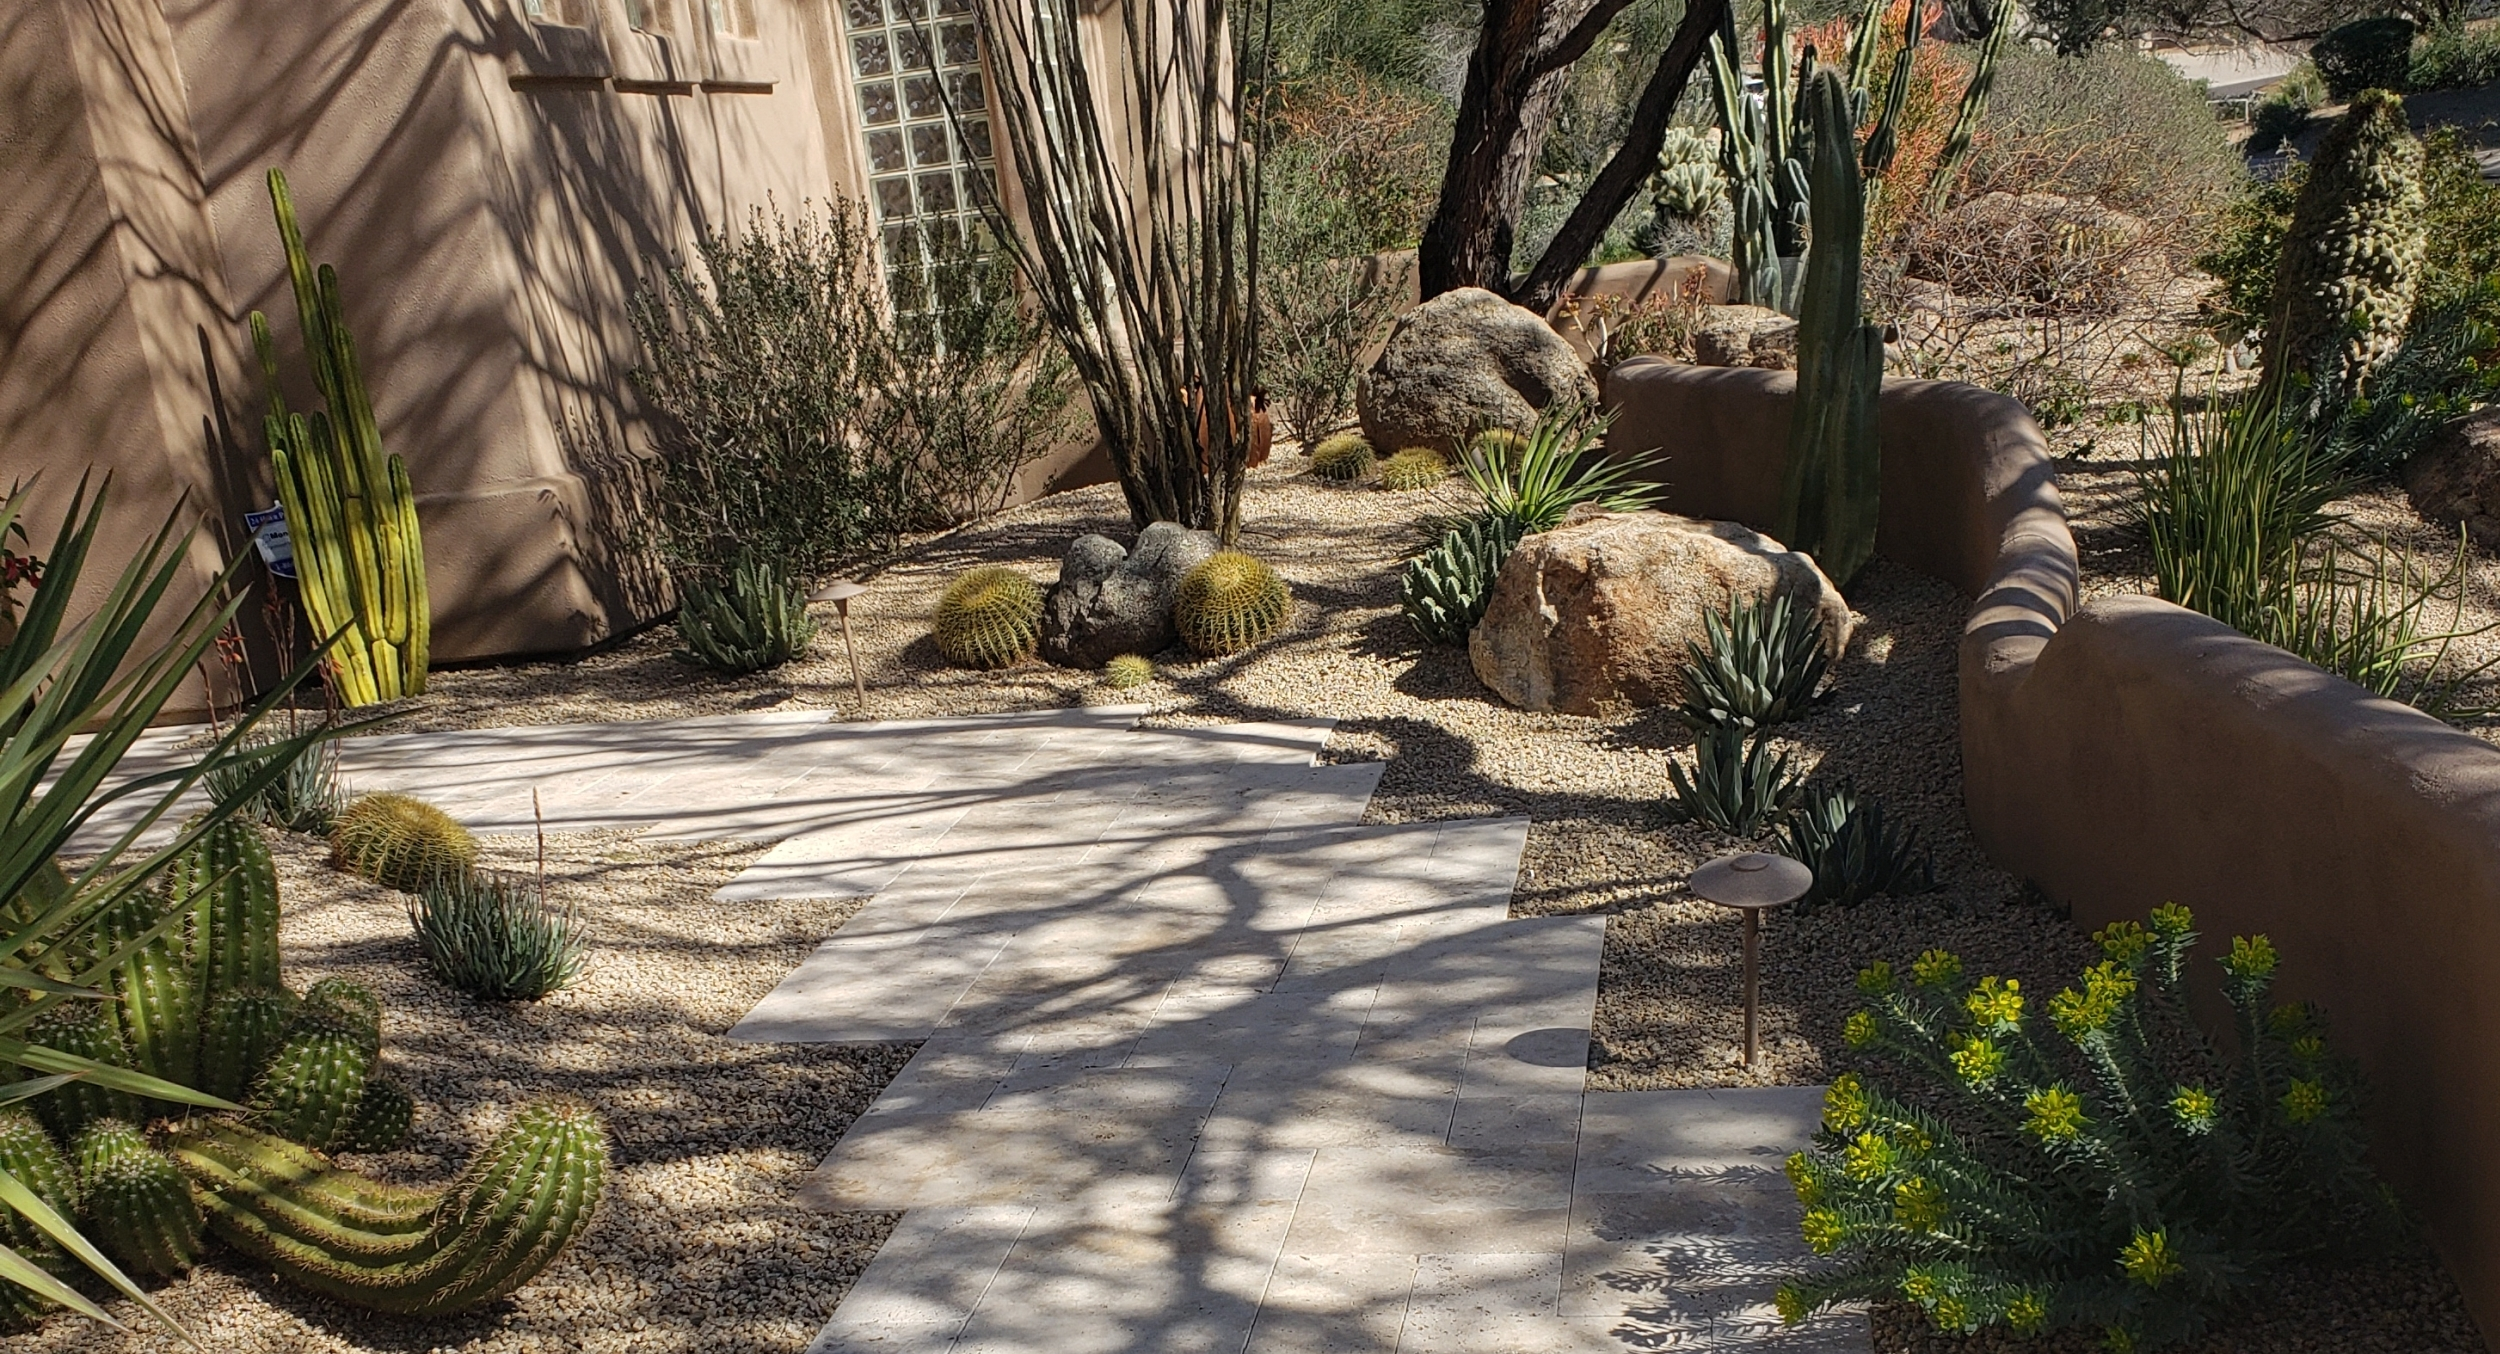 Getting the most benefit and beauty from any part of your yard landscape design, Phoenix and Scottsdale homeowners. Carefully chosen cacti and succulents make traveling along this travertine walk a lovely experience.